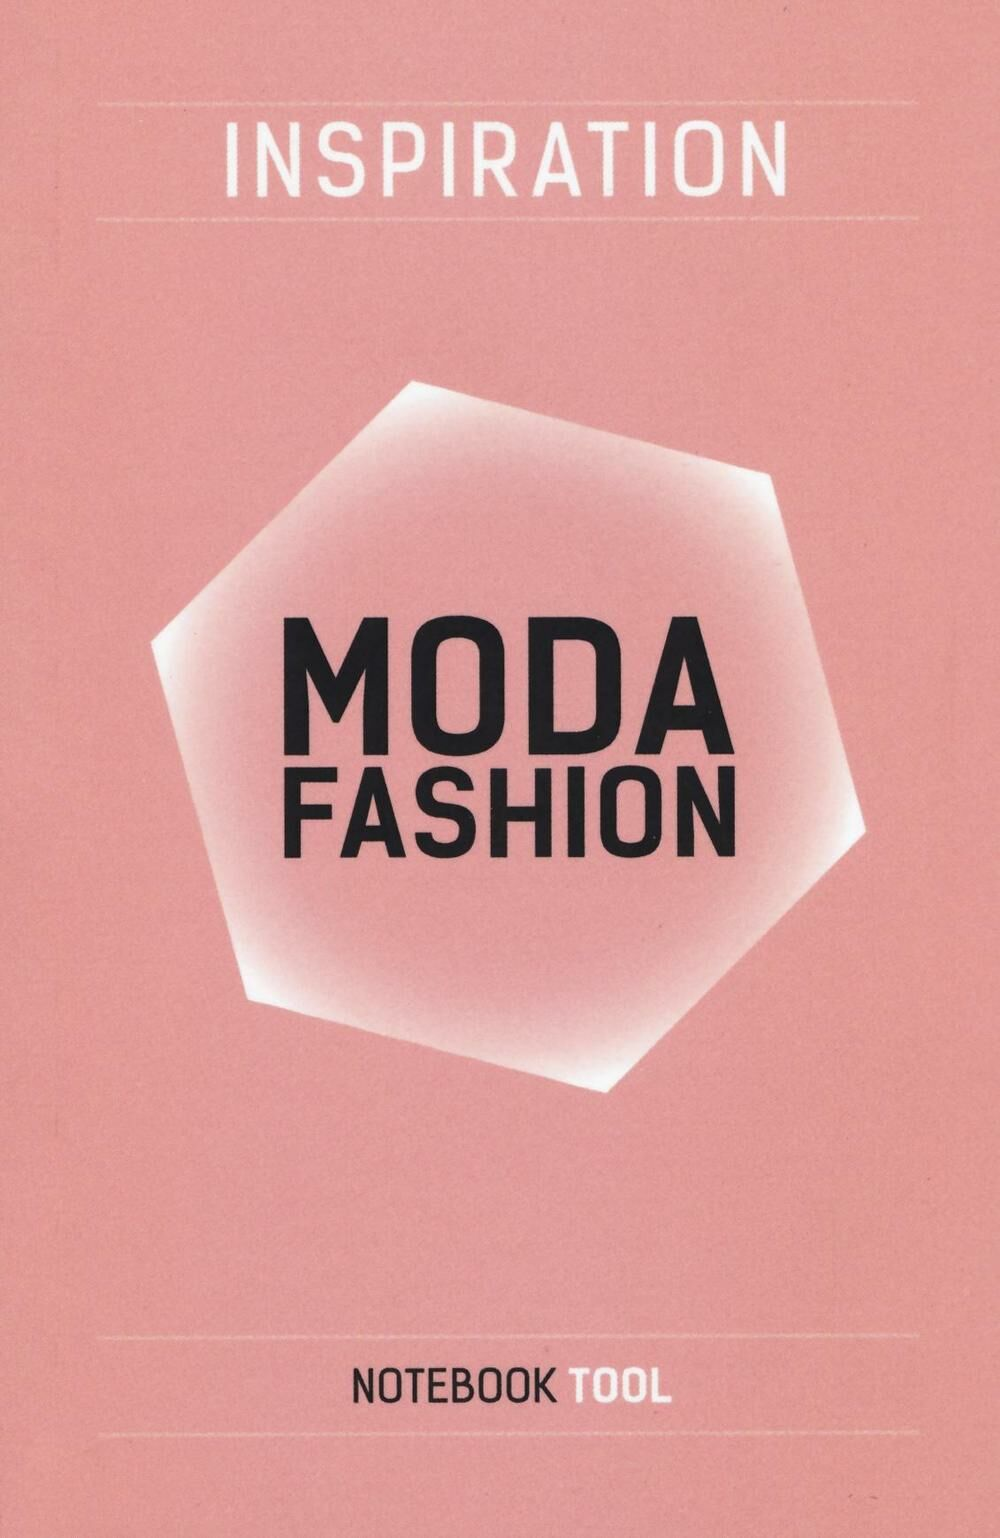 Inspiration moda fashion